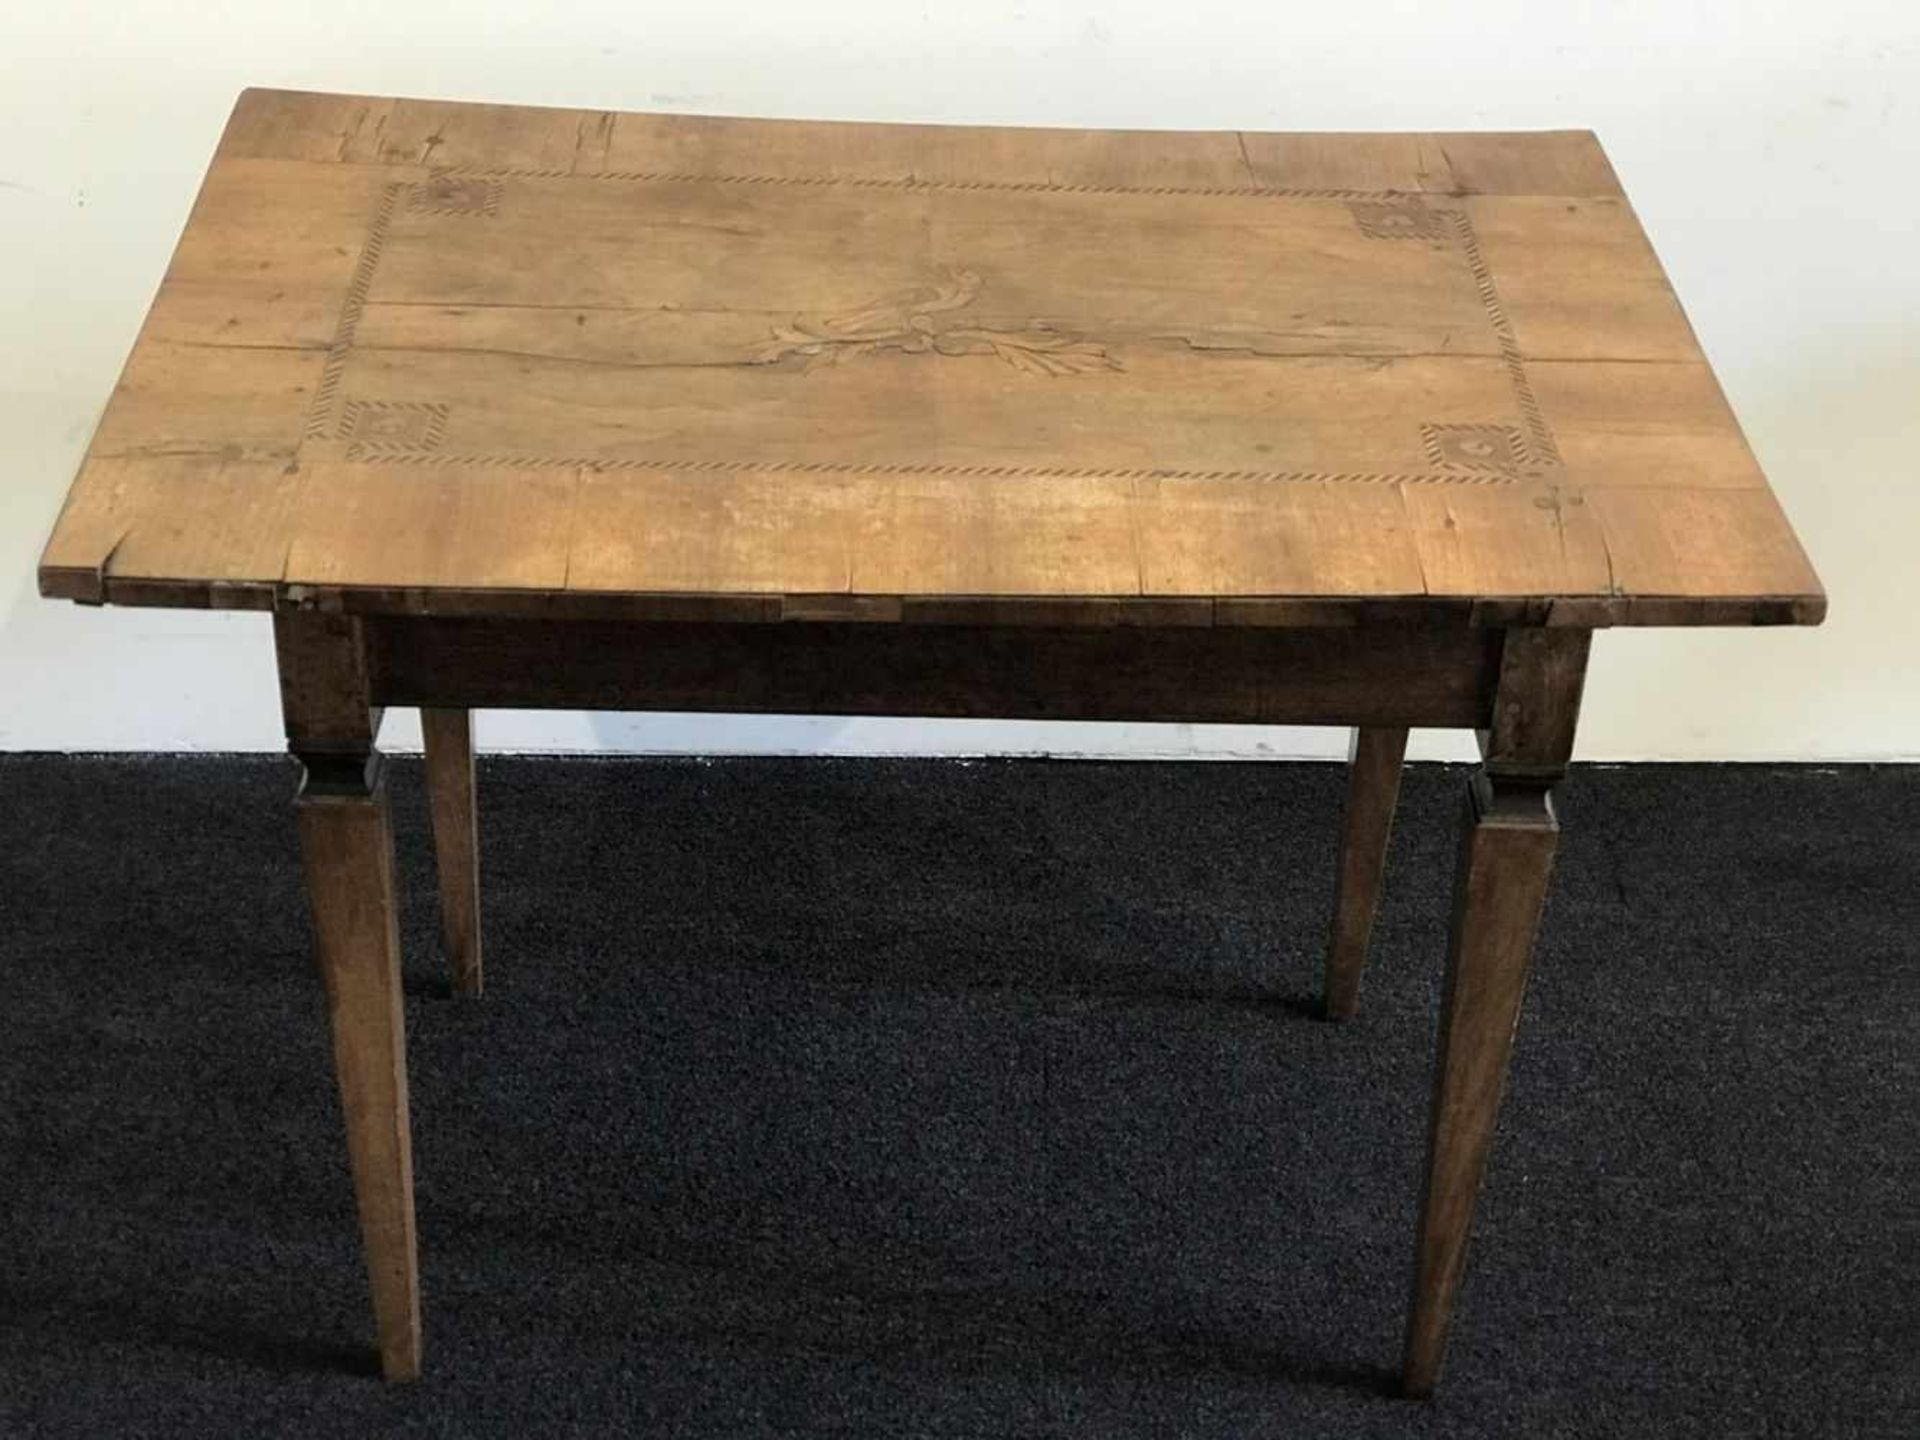 Los 101 - Table with marquetry Table with marquetry H 72 L 96 B 66 cm